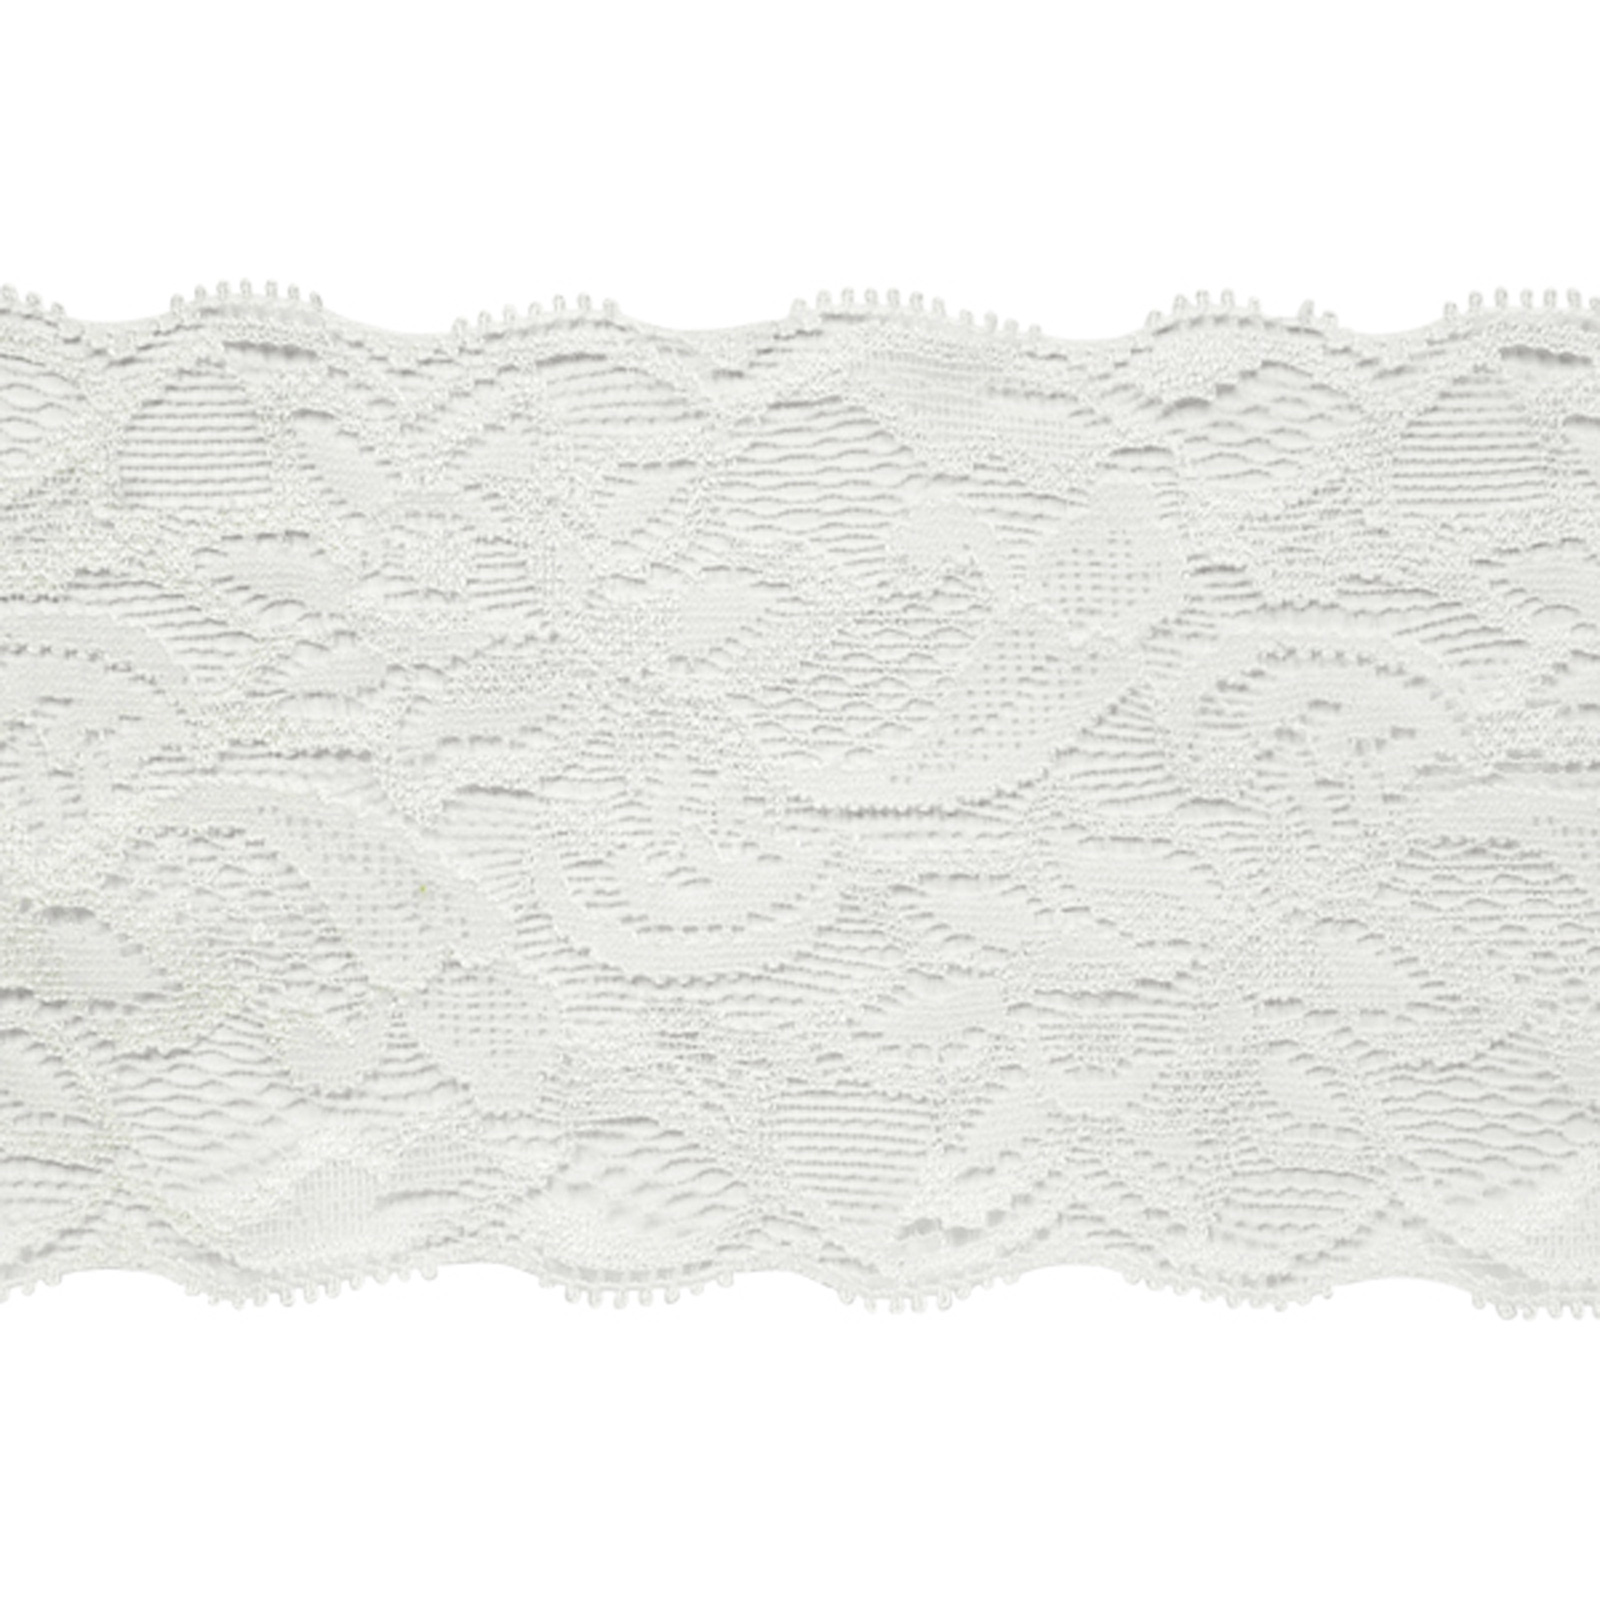 7 1/2'' Laurie Chantilly Lace Trim Ivory by Expo in USA